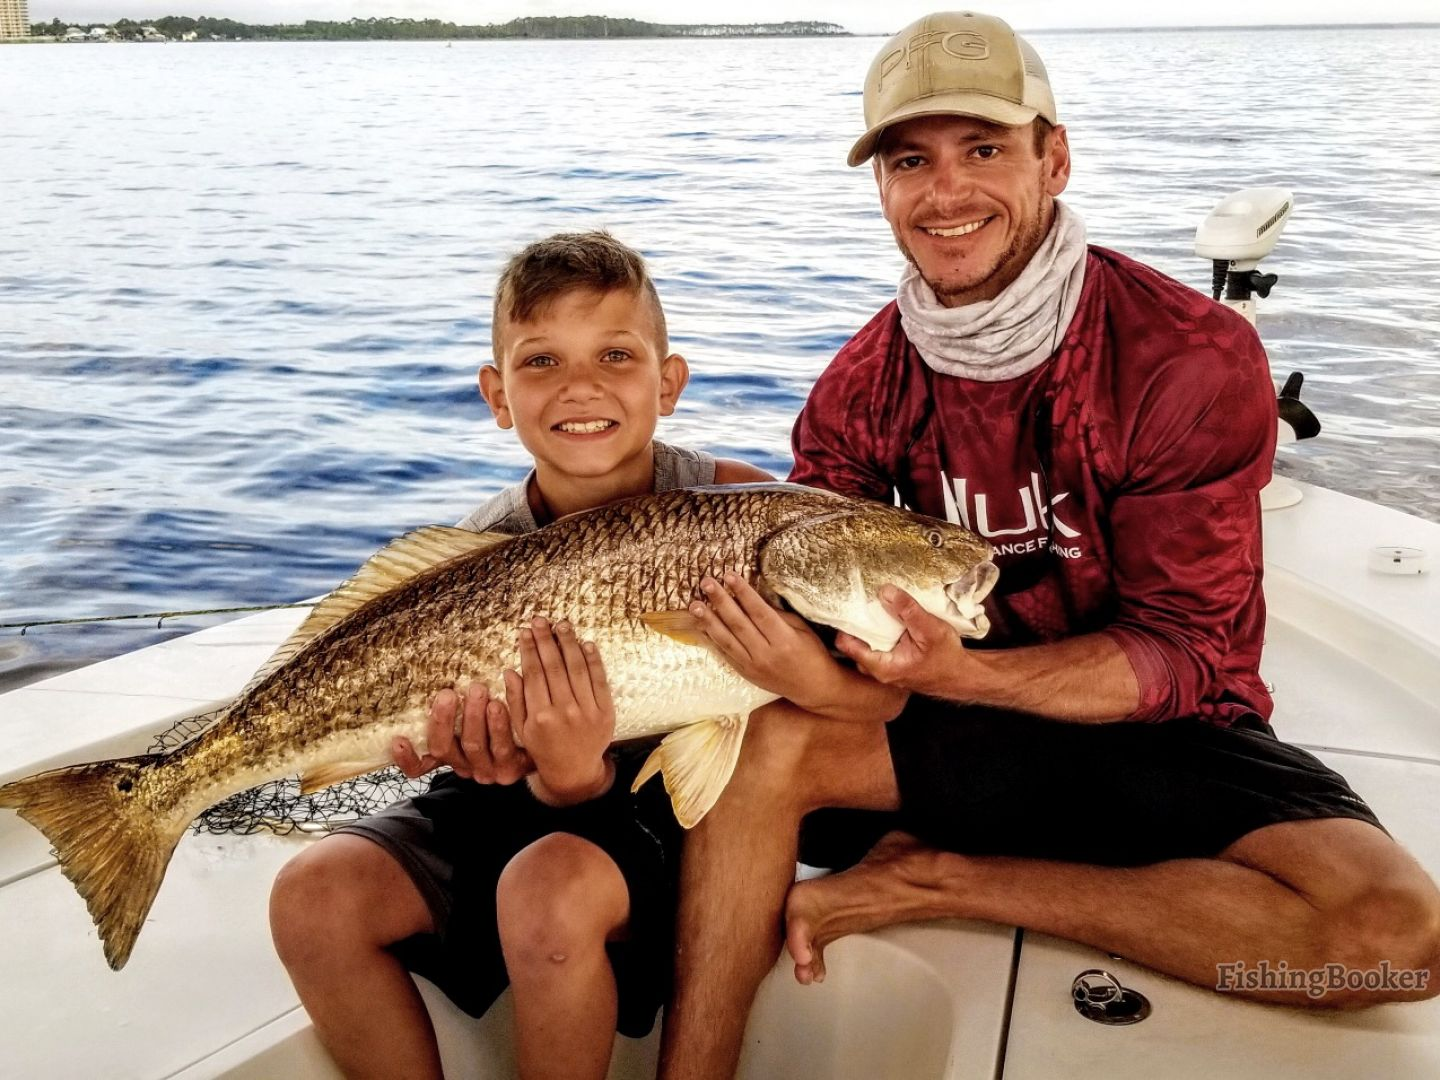 A fishing charter captain is helping a young boy angler hold a Redfish